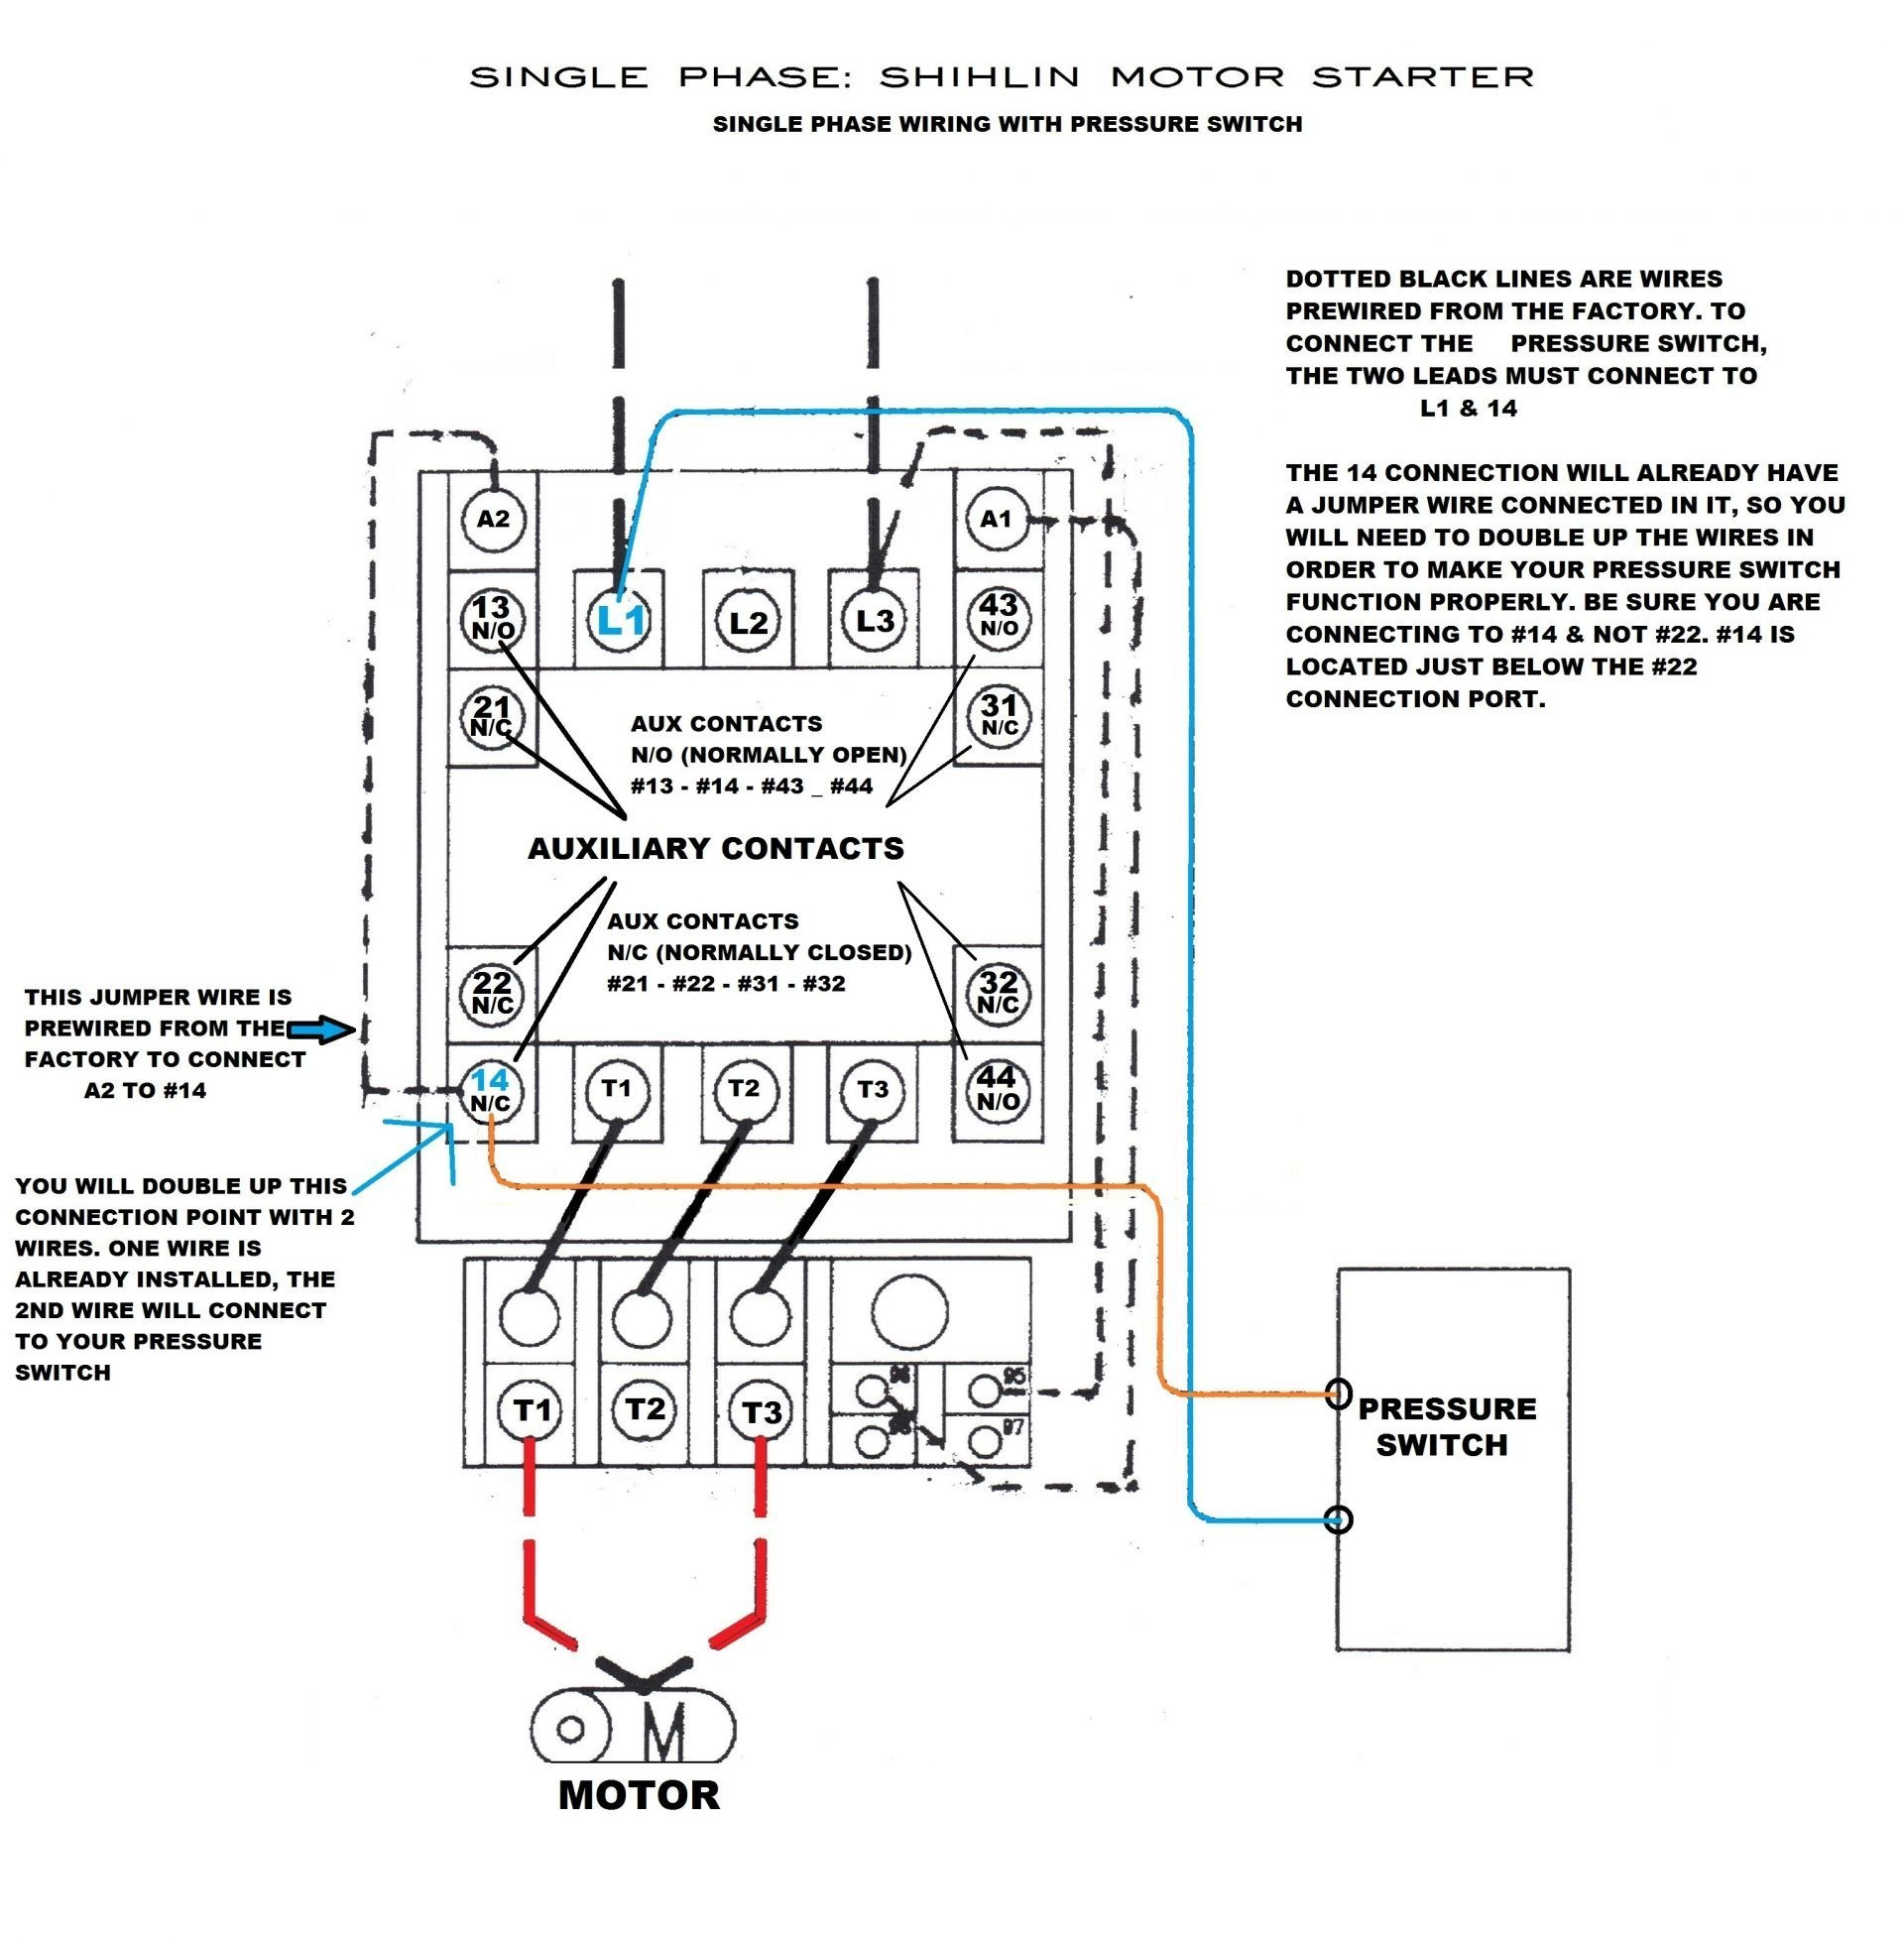 siemens soft starter wiring diagram sample. Black Bedroom Furniture Sets. Home Design Ideas